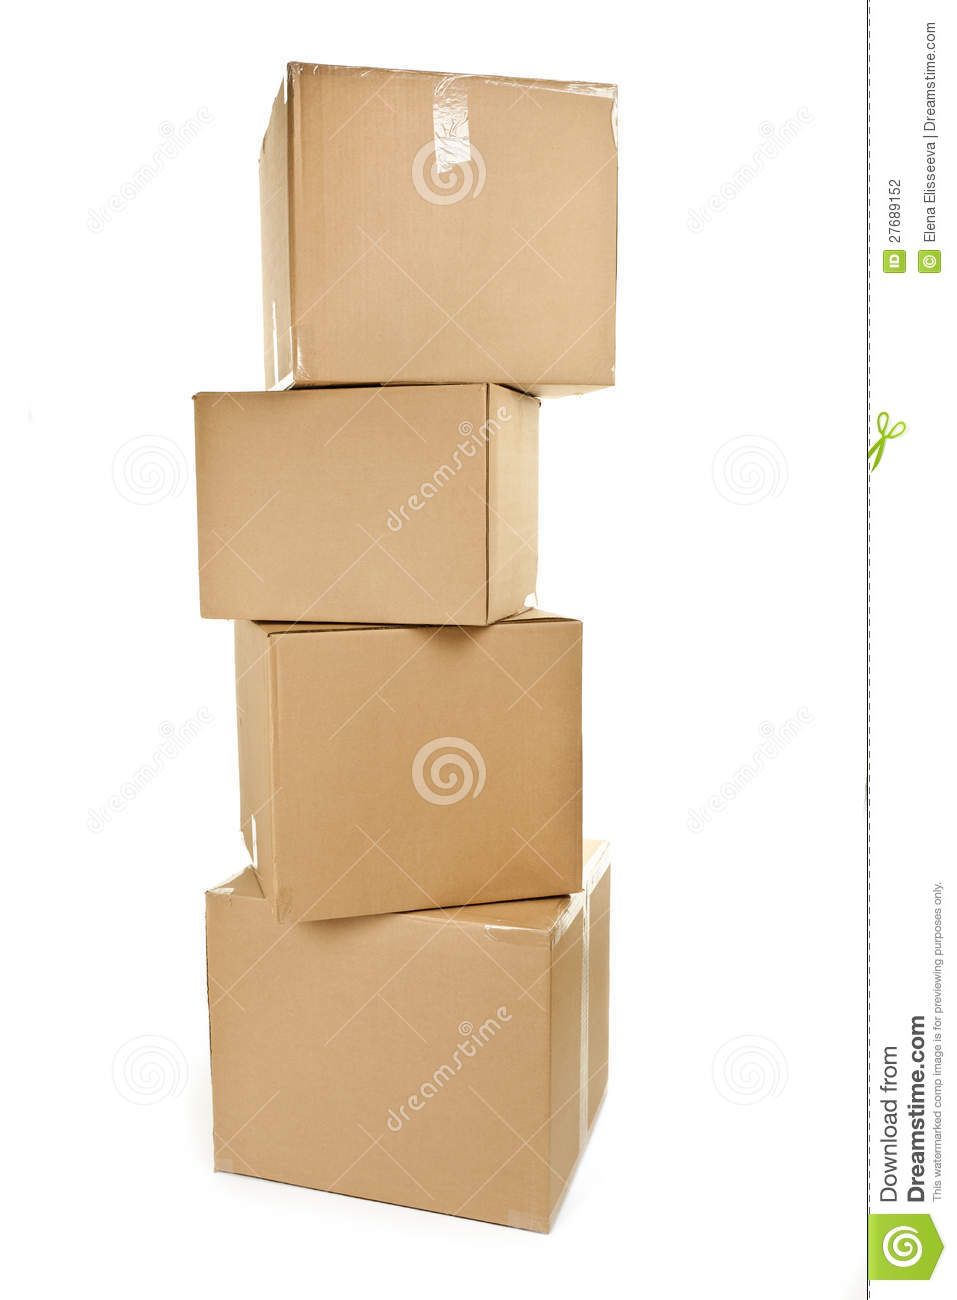 Stack Of Big Cardboard Boxes Stock Photography - Image: 27689152